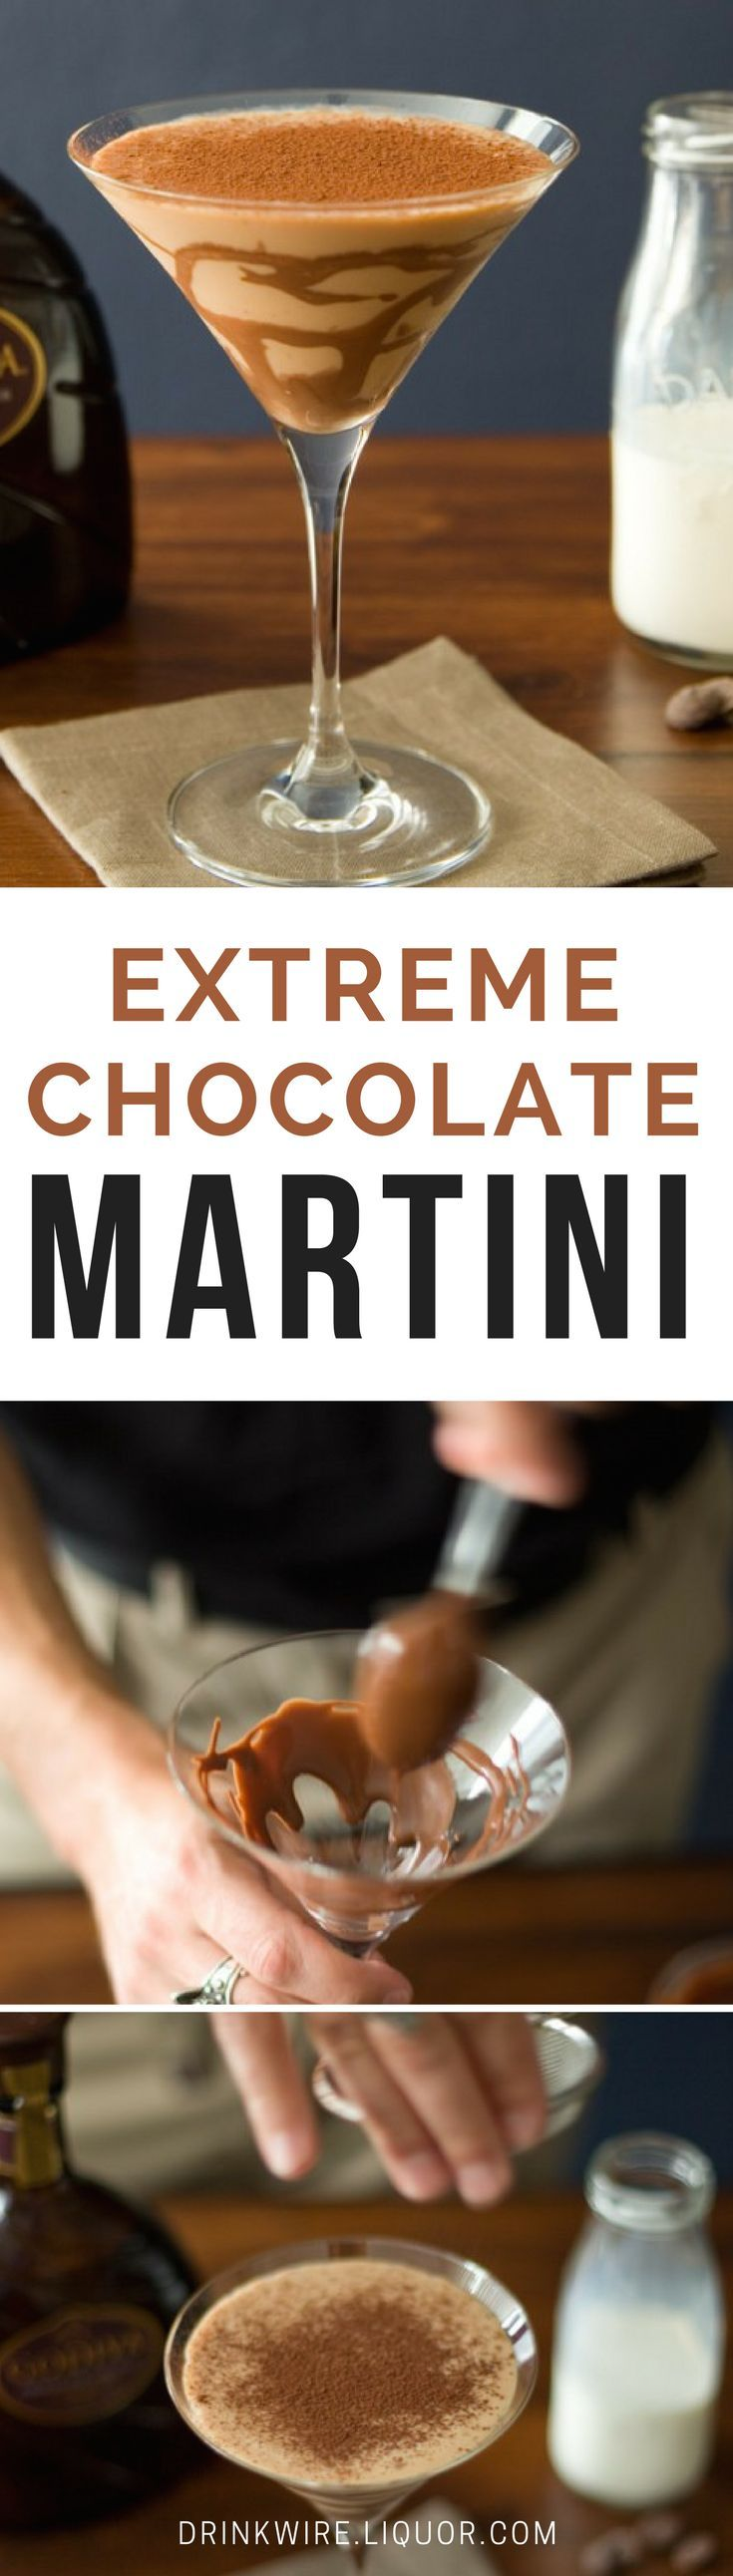 The Extreme Chocolate Martini is the epitome of boozy decadence. What we have here is a combination of crème de cacao, chocolate liqueur, chocolate sauce and cocoa powder. Chocoholics better watch out, this one is quite tempting!